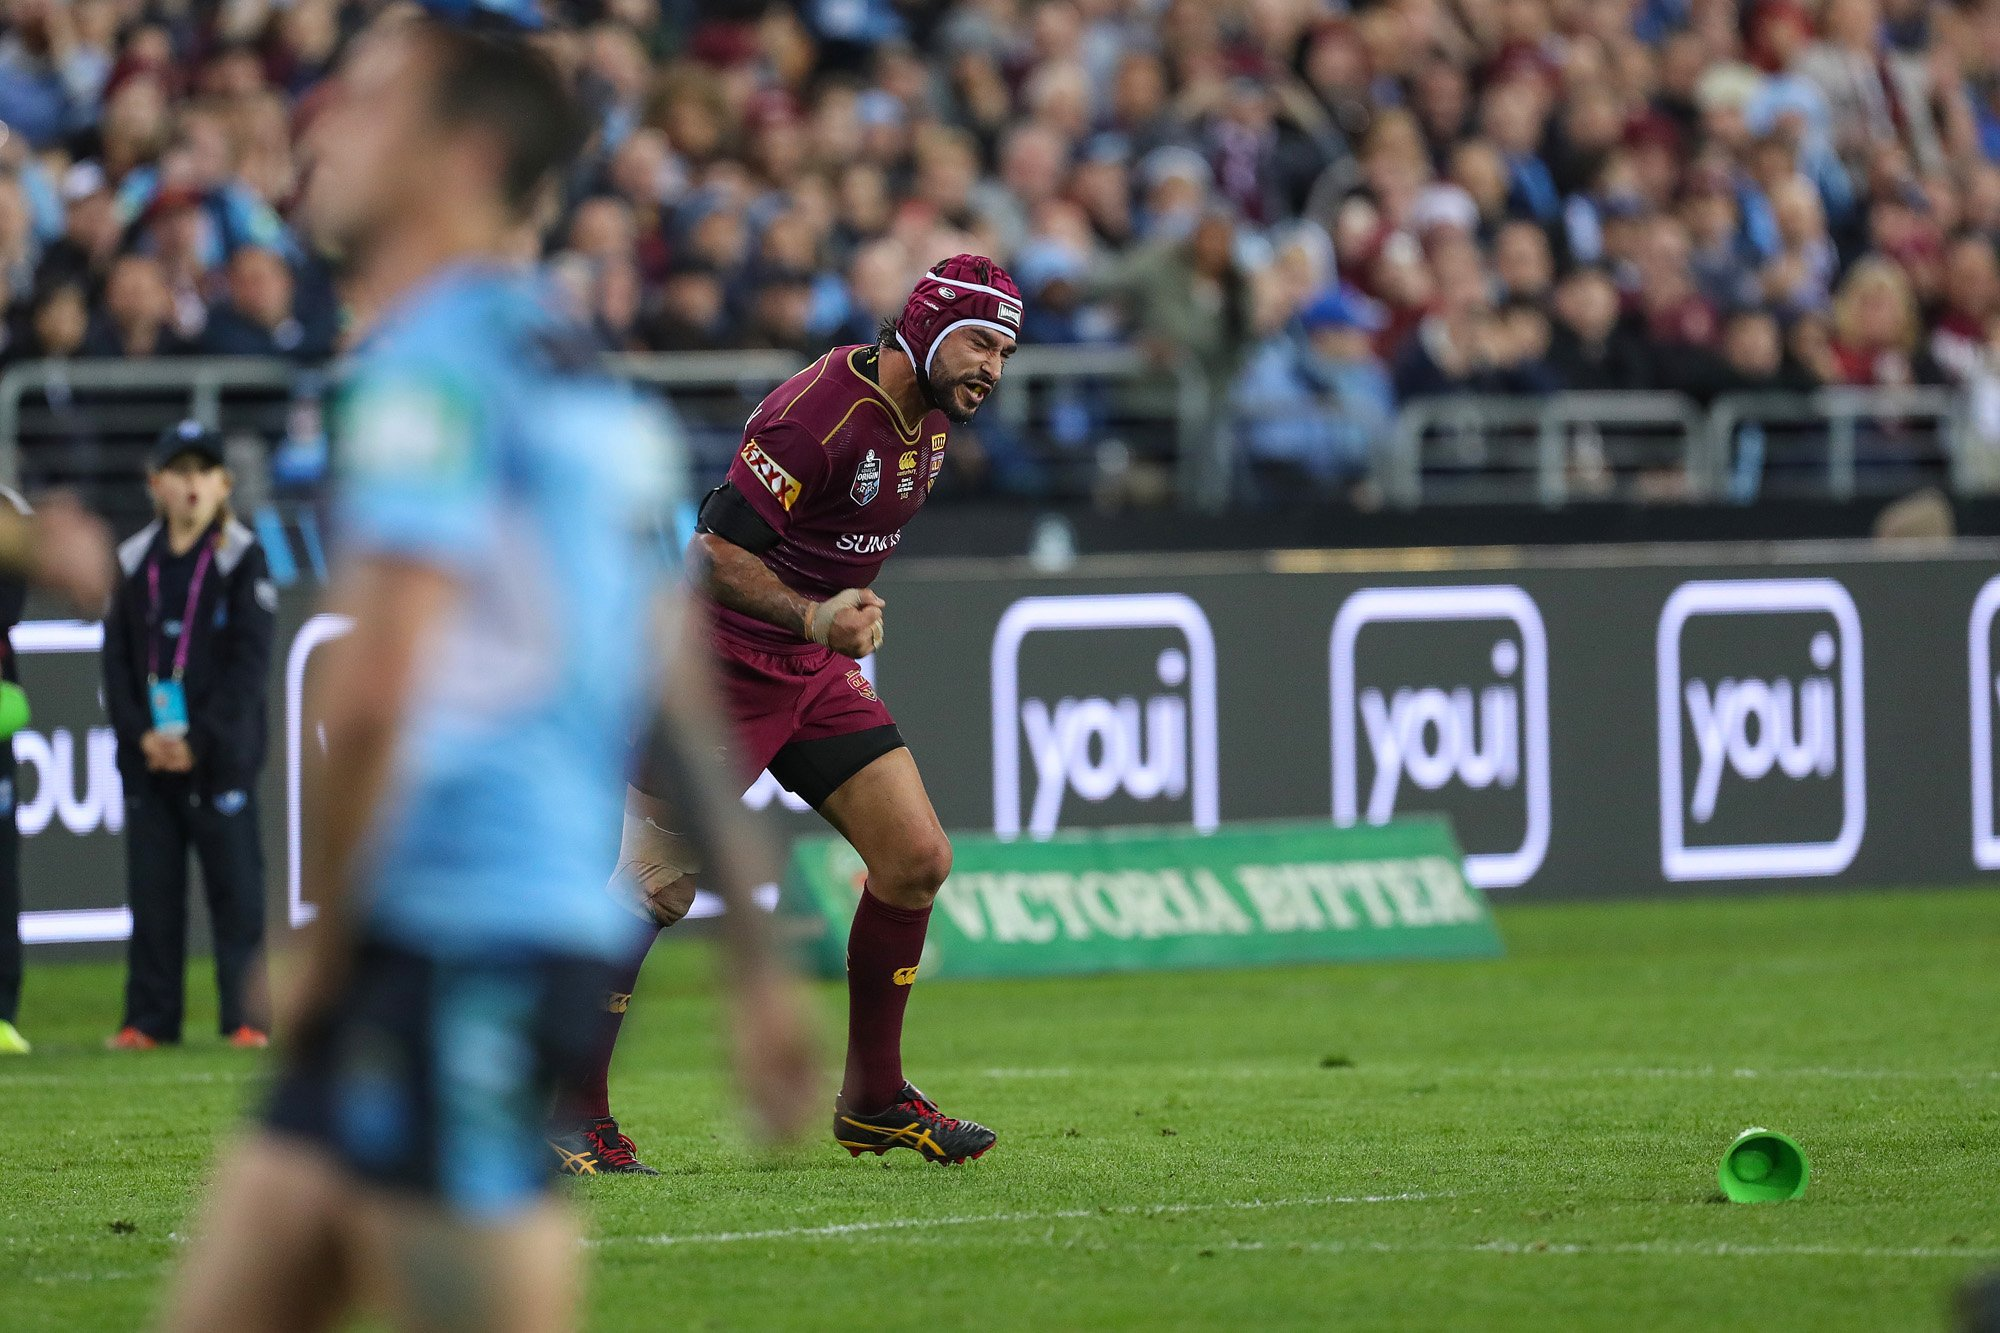 YESSSSS! Thurston edges the @QLDmaroons aheads #QLDER #origin #ridemcowboys https://t.co/3WESE6i8Gi